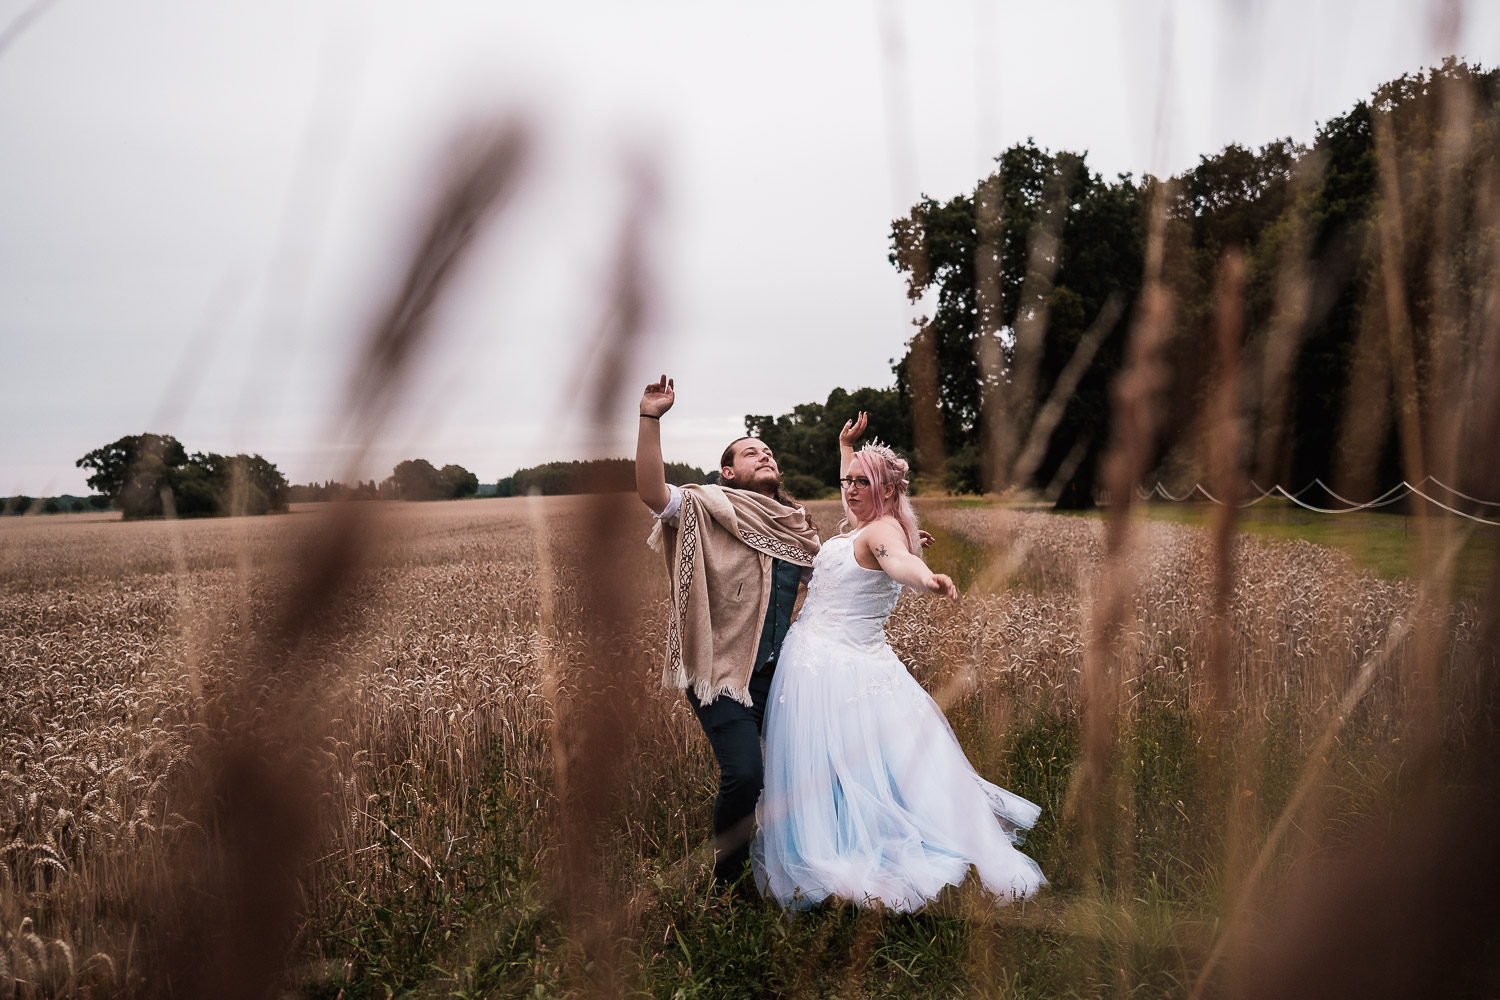 The bride and groom are playful at their Escrick park estate wedding